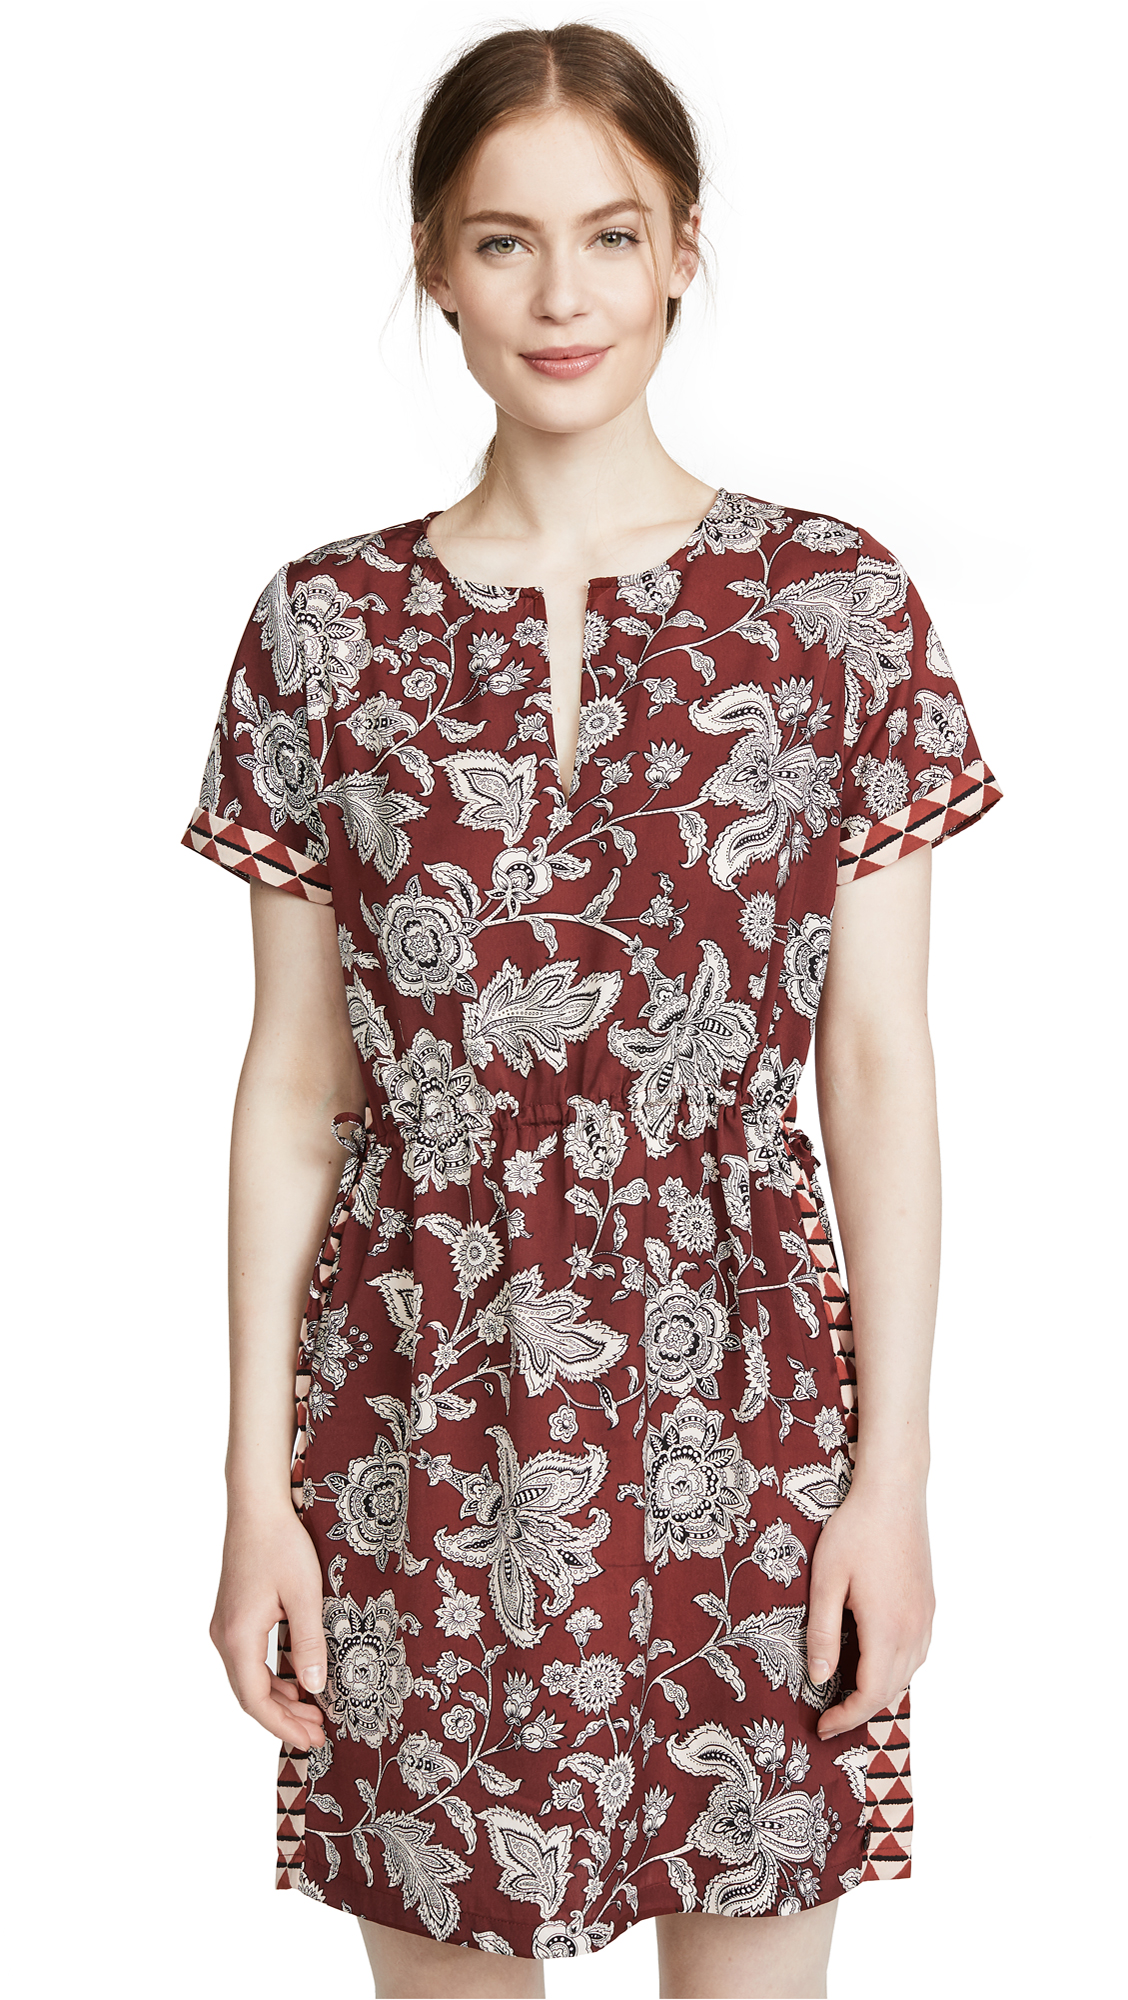 Scotch & Soda/Maison Scotch Paisley Print Dress In Combo A